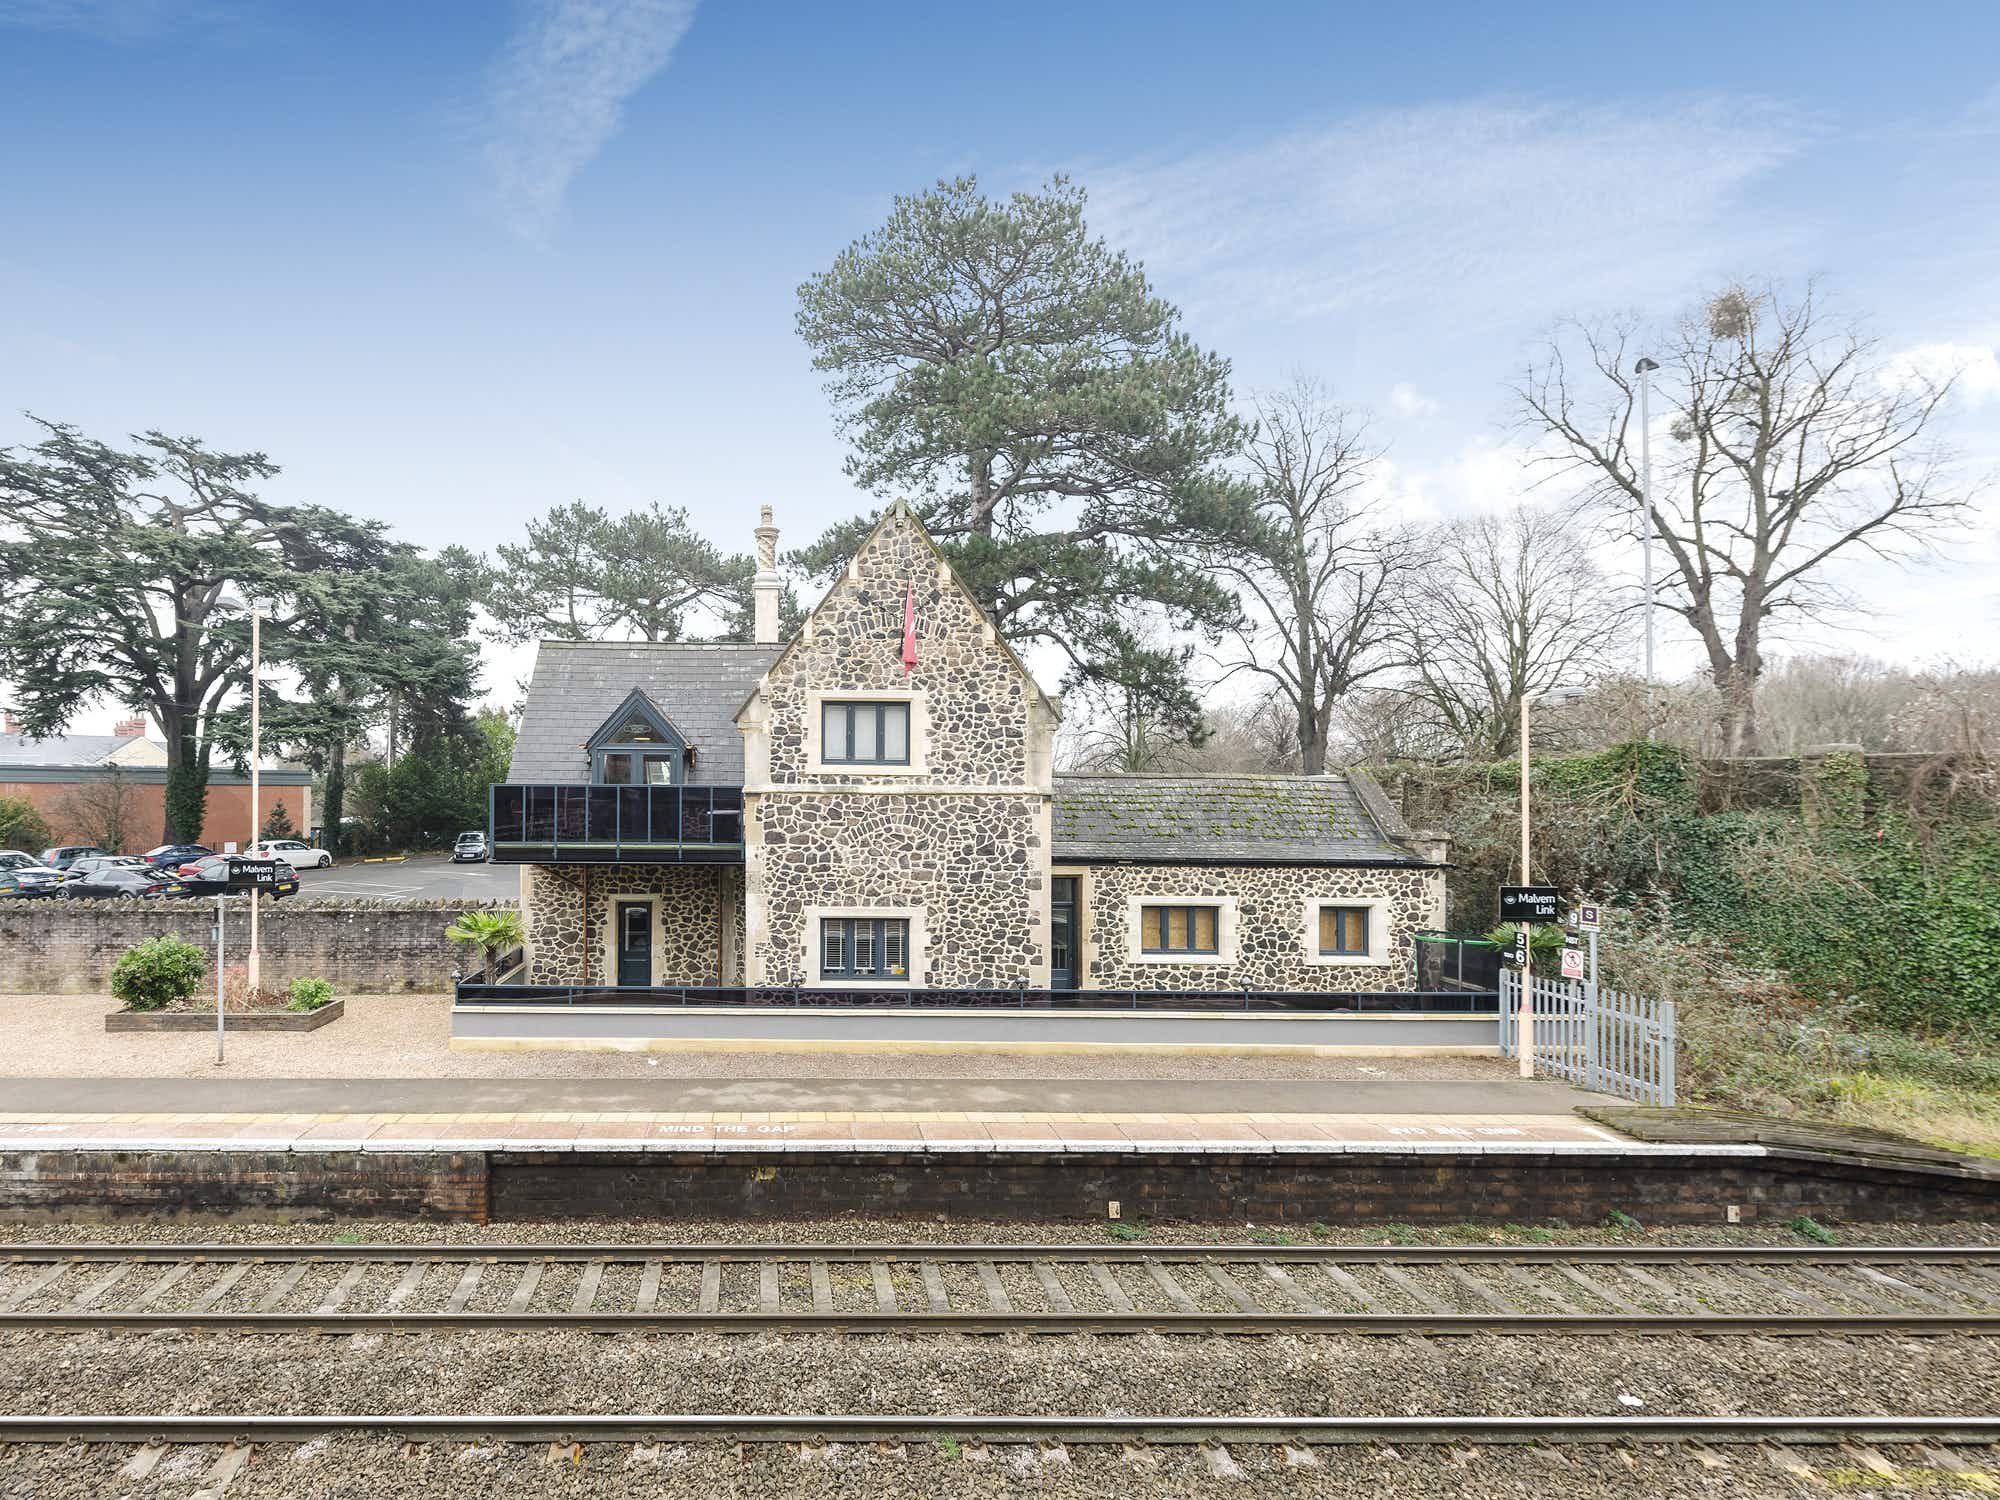 Live like a station master and stay in this charming English cottage on a busy train platform